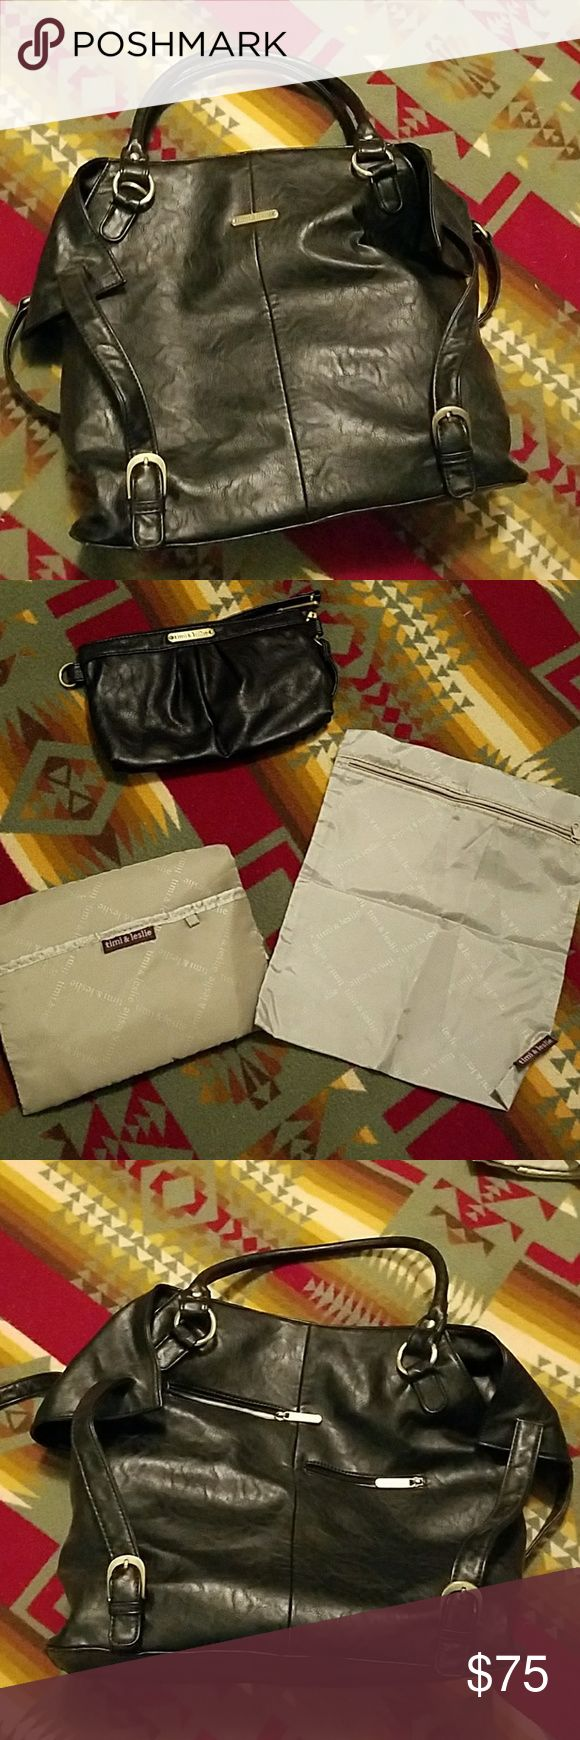 "Timi & Leslie ""Charlie"" Diaper Bag Comes with clothes bag, wristlet and changing pad. No bottle cooler. EUC. Timi & Leslie Bags Baby Bags"